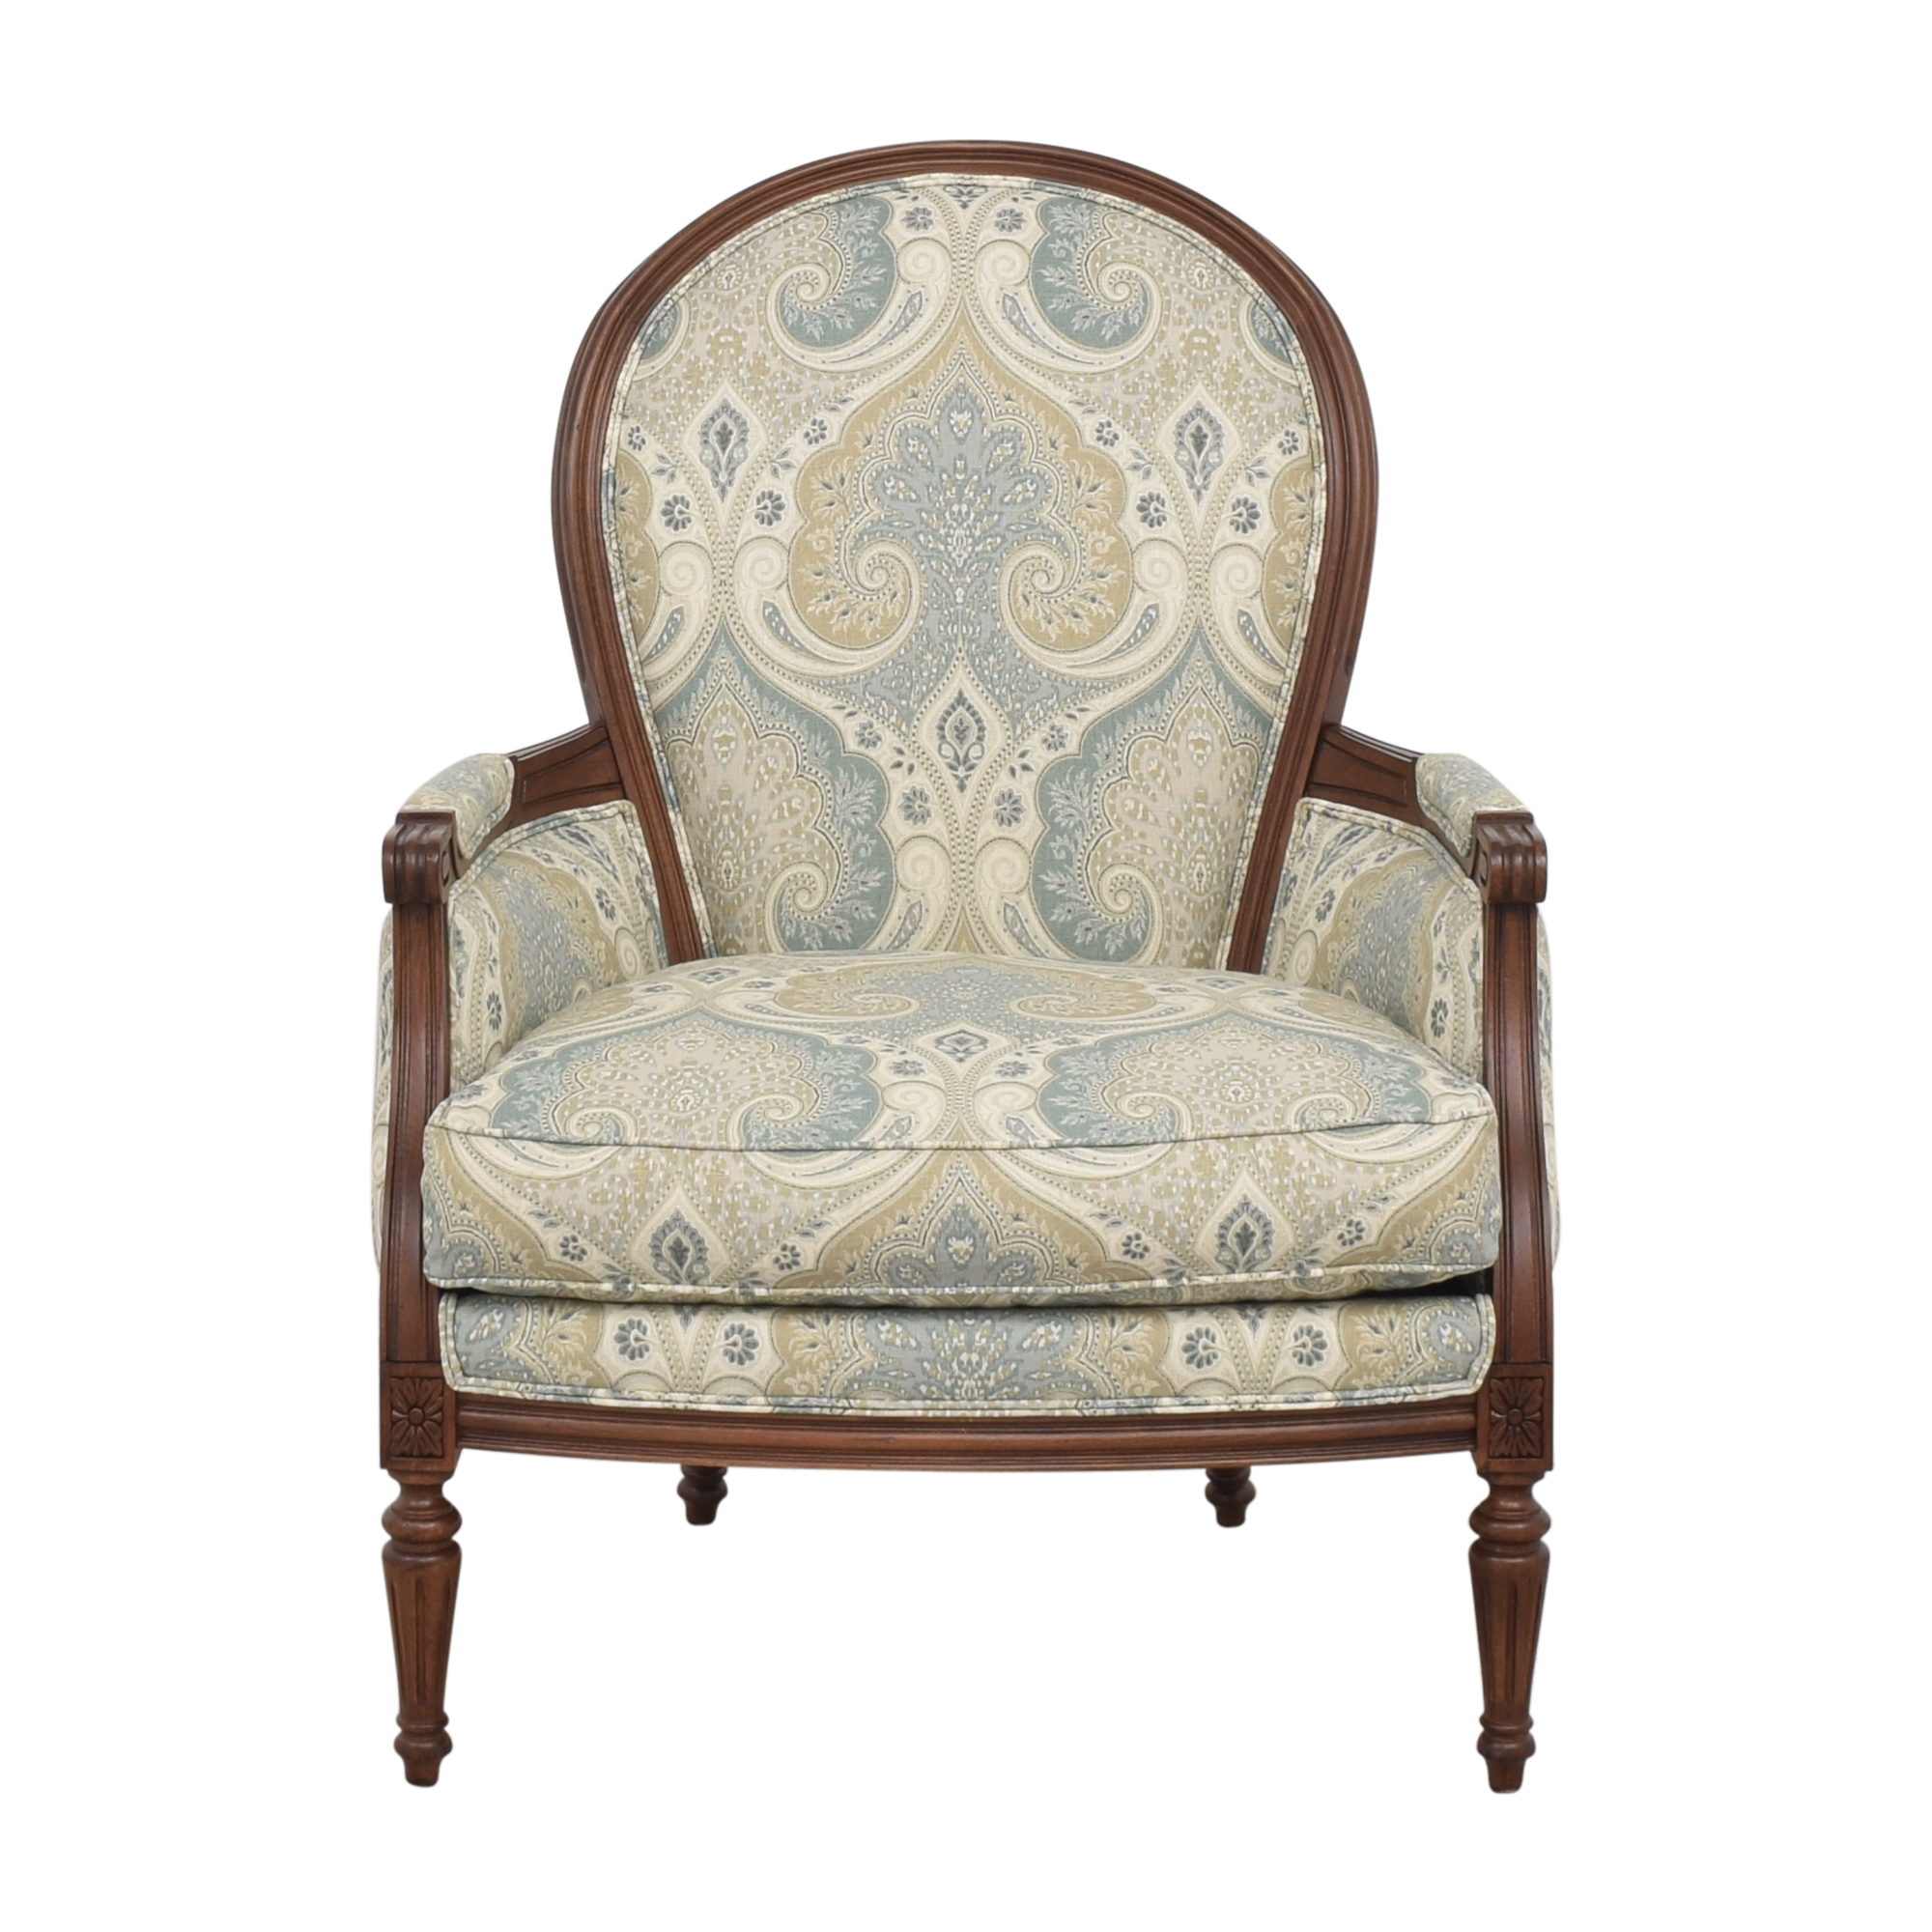 Ethan Allen Ethan Allen Suzette Chair on sale